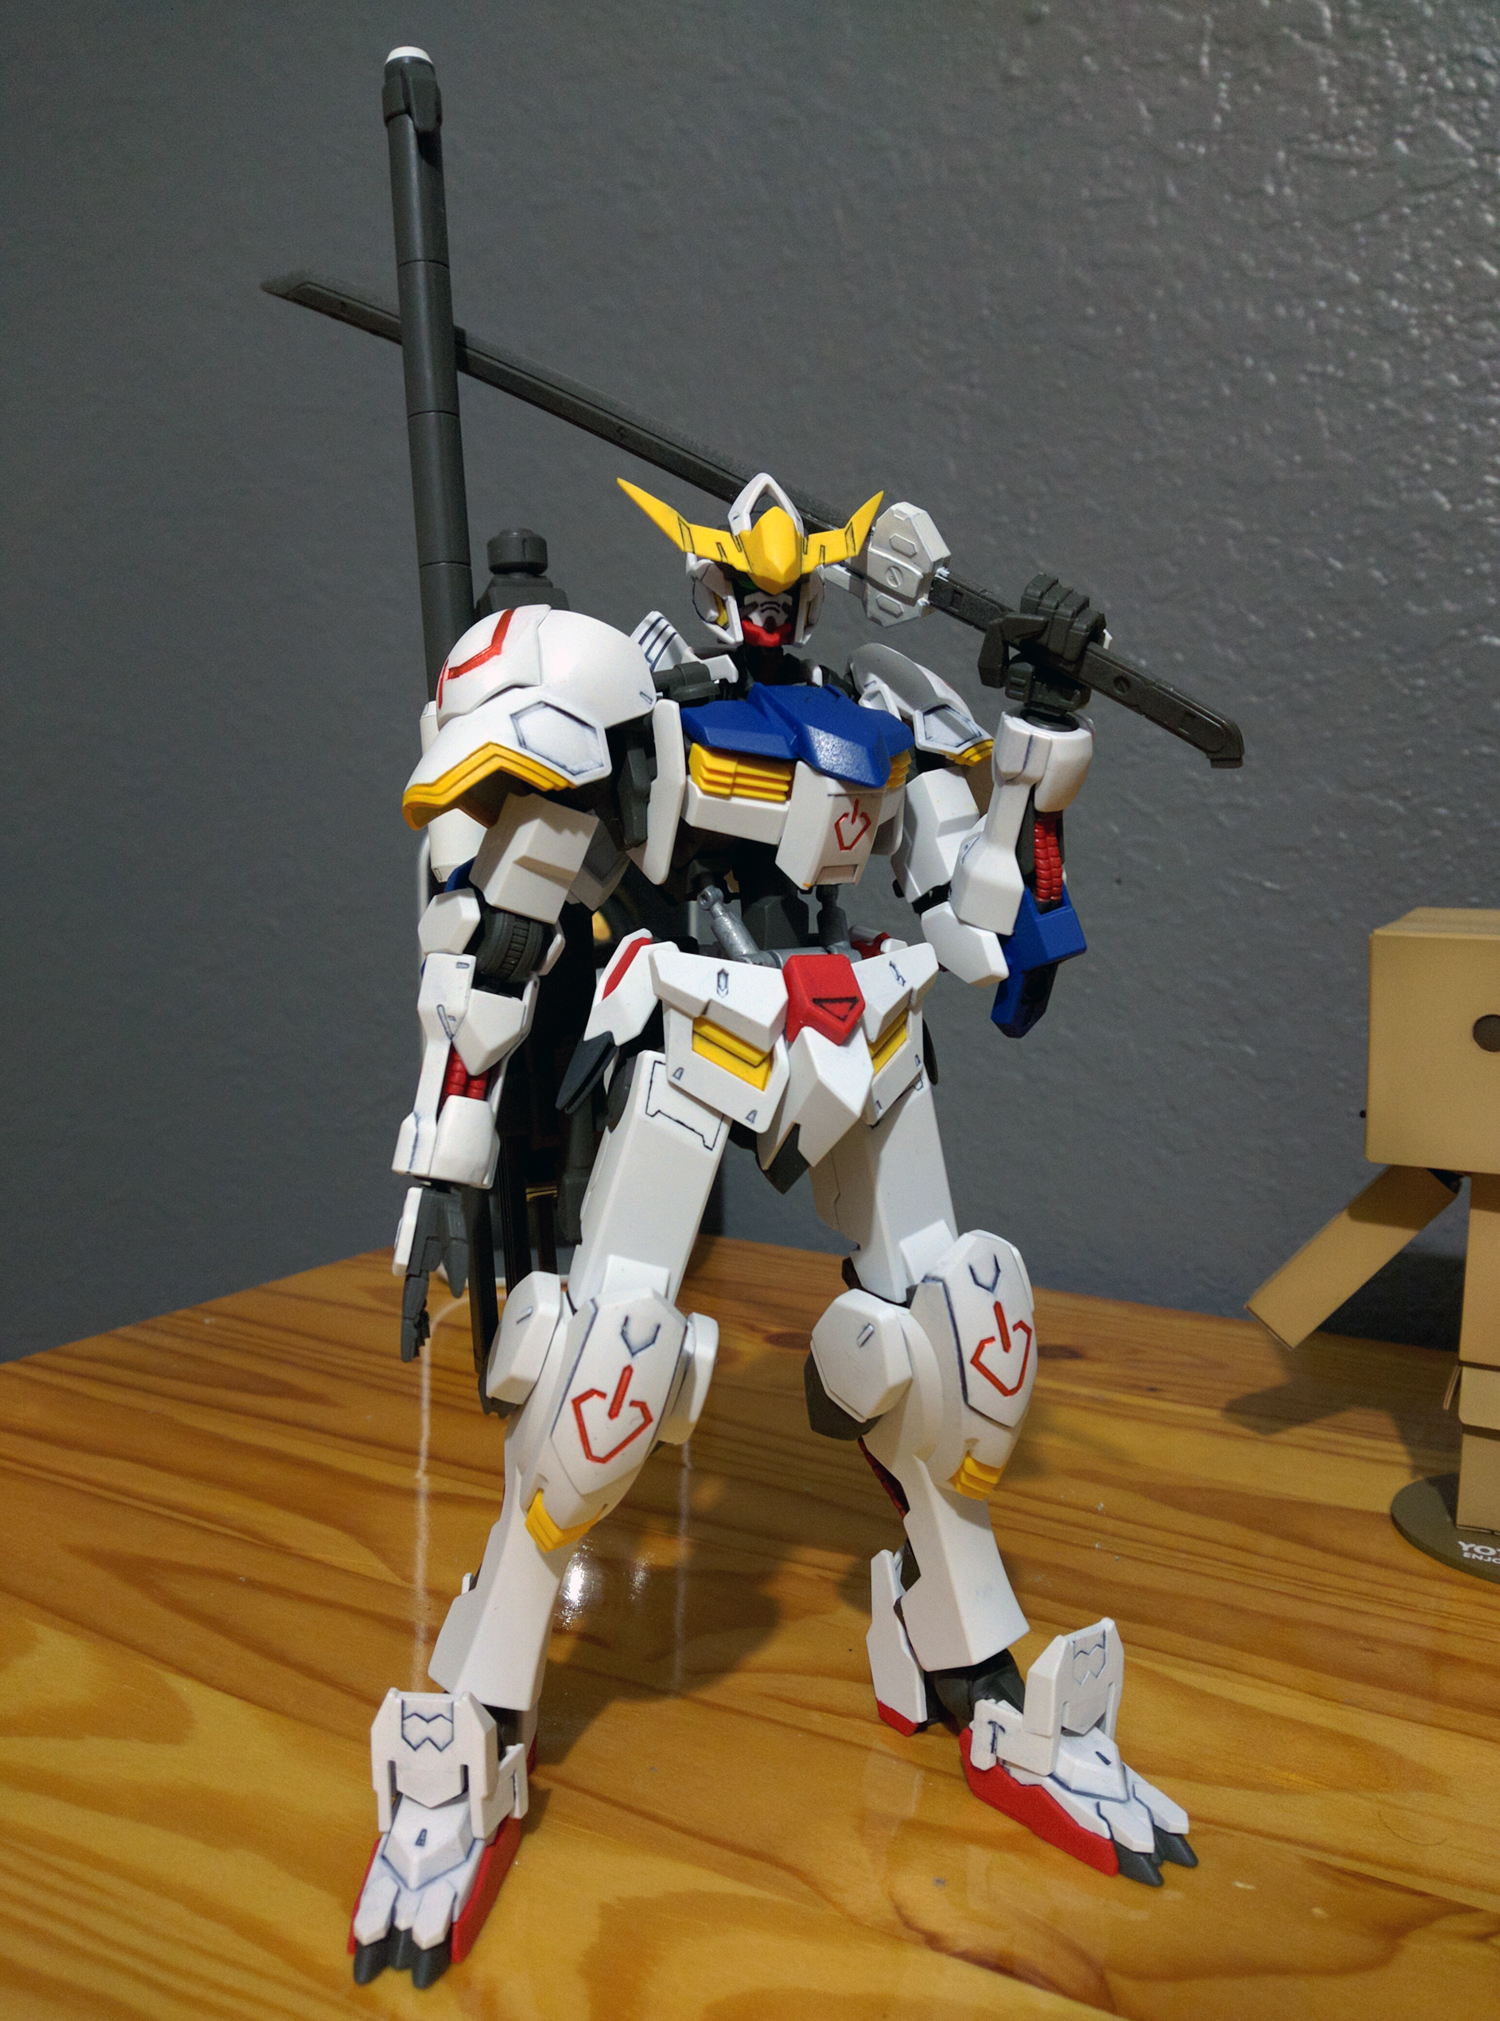 How To Upgrade Your Gunpla With Paint Instead Of Stickers Gunpla - Make your own decals machine